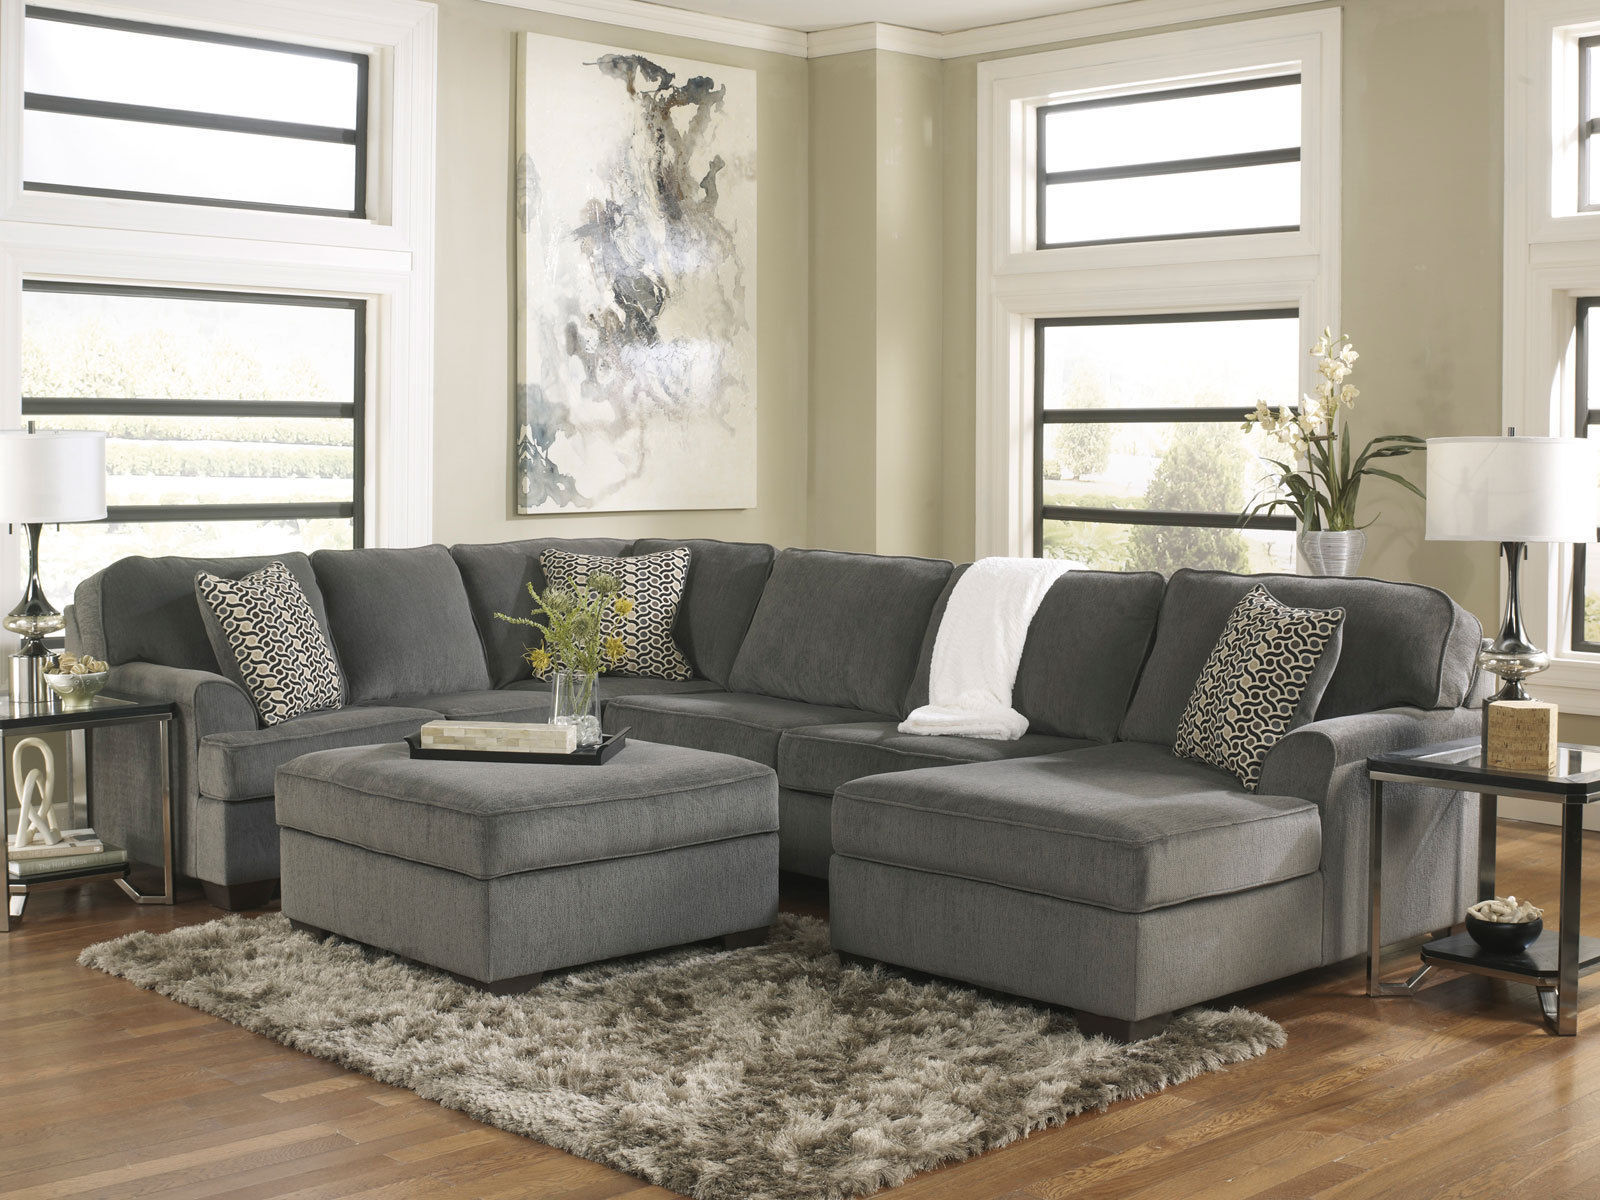 Living Room With Sectional : SOLE-OVERSIZED MODERN GRAY FABRIC SOFA COUCH SECTIONAL SET ...